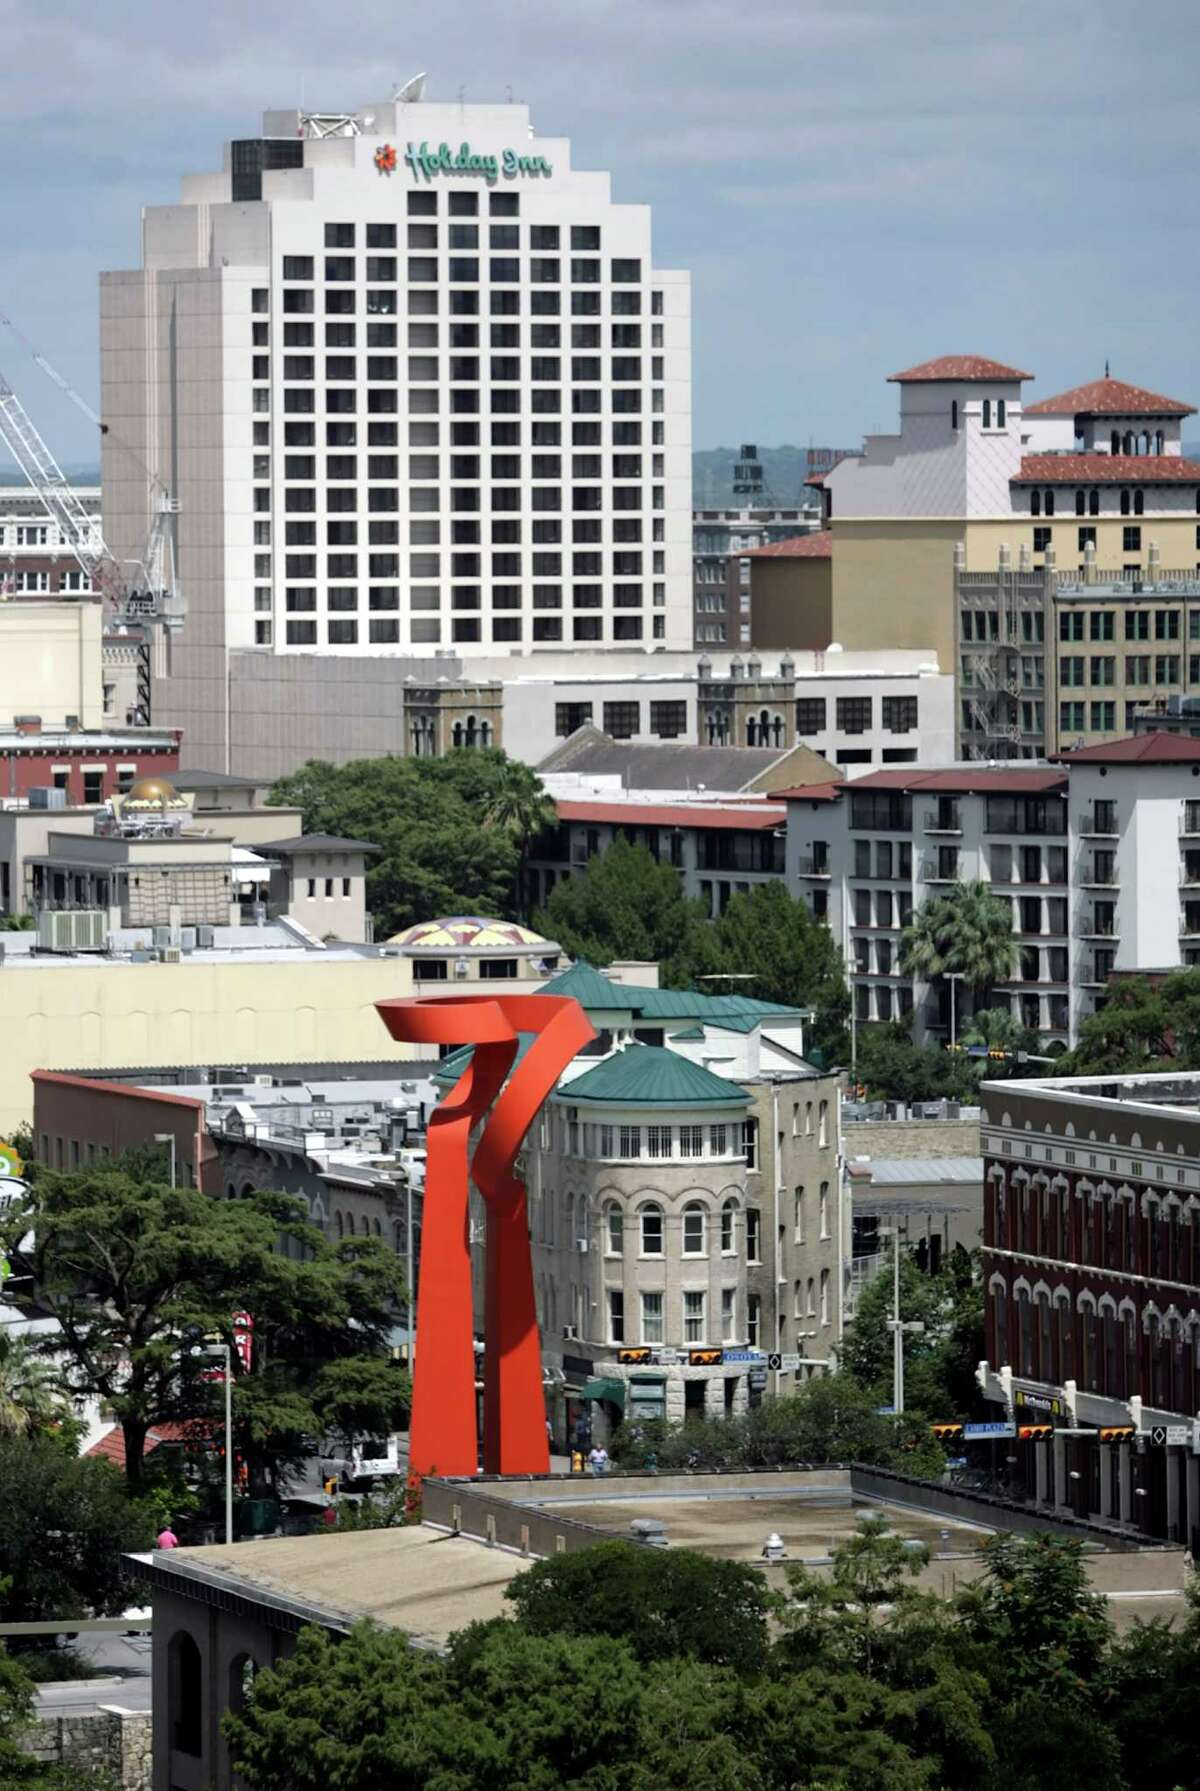 A plan to privatize San Antonio's marketing efforts by changing the Convention and Visitors Bureau into a nonprofit organization raises major concerns about transparency in the use of $20 million a year in public funds.